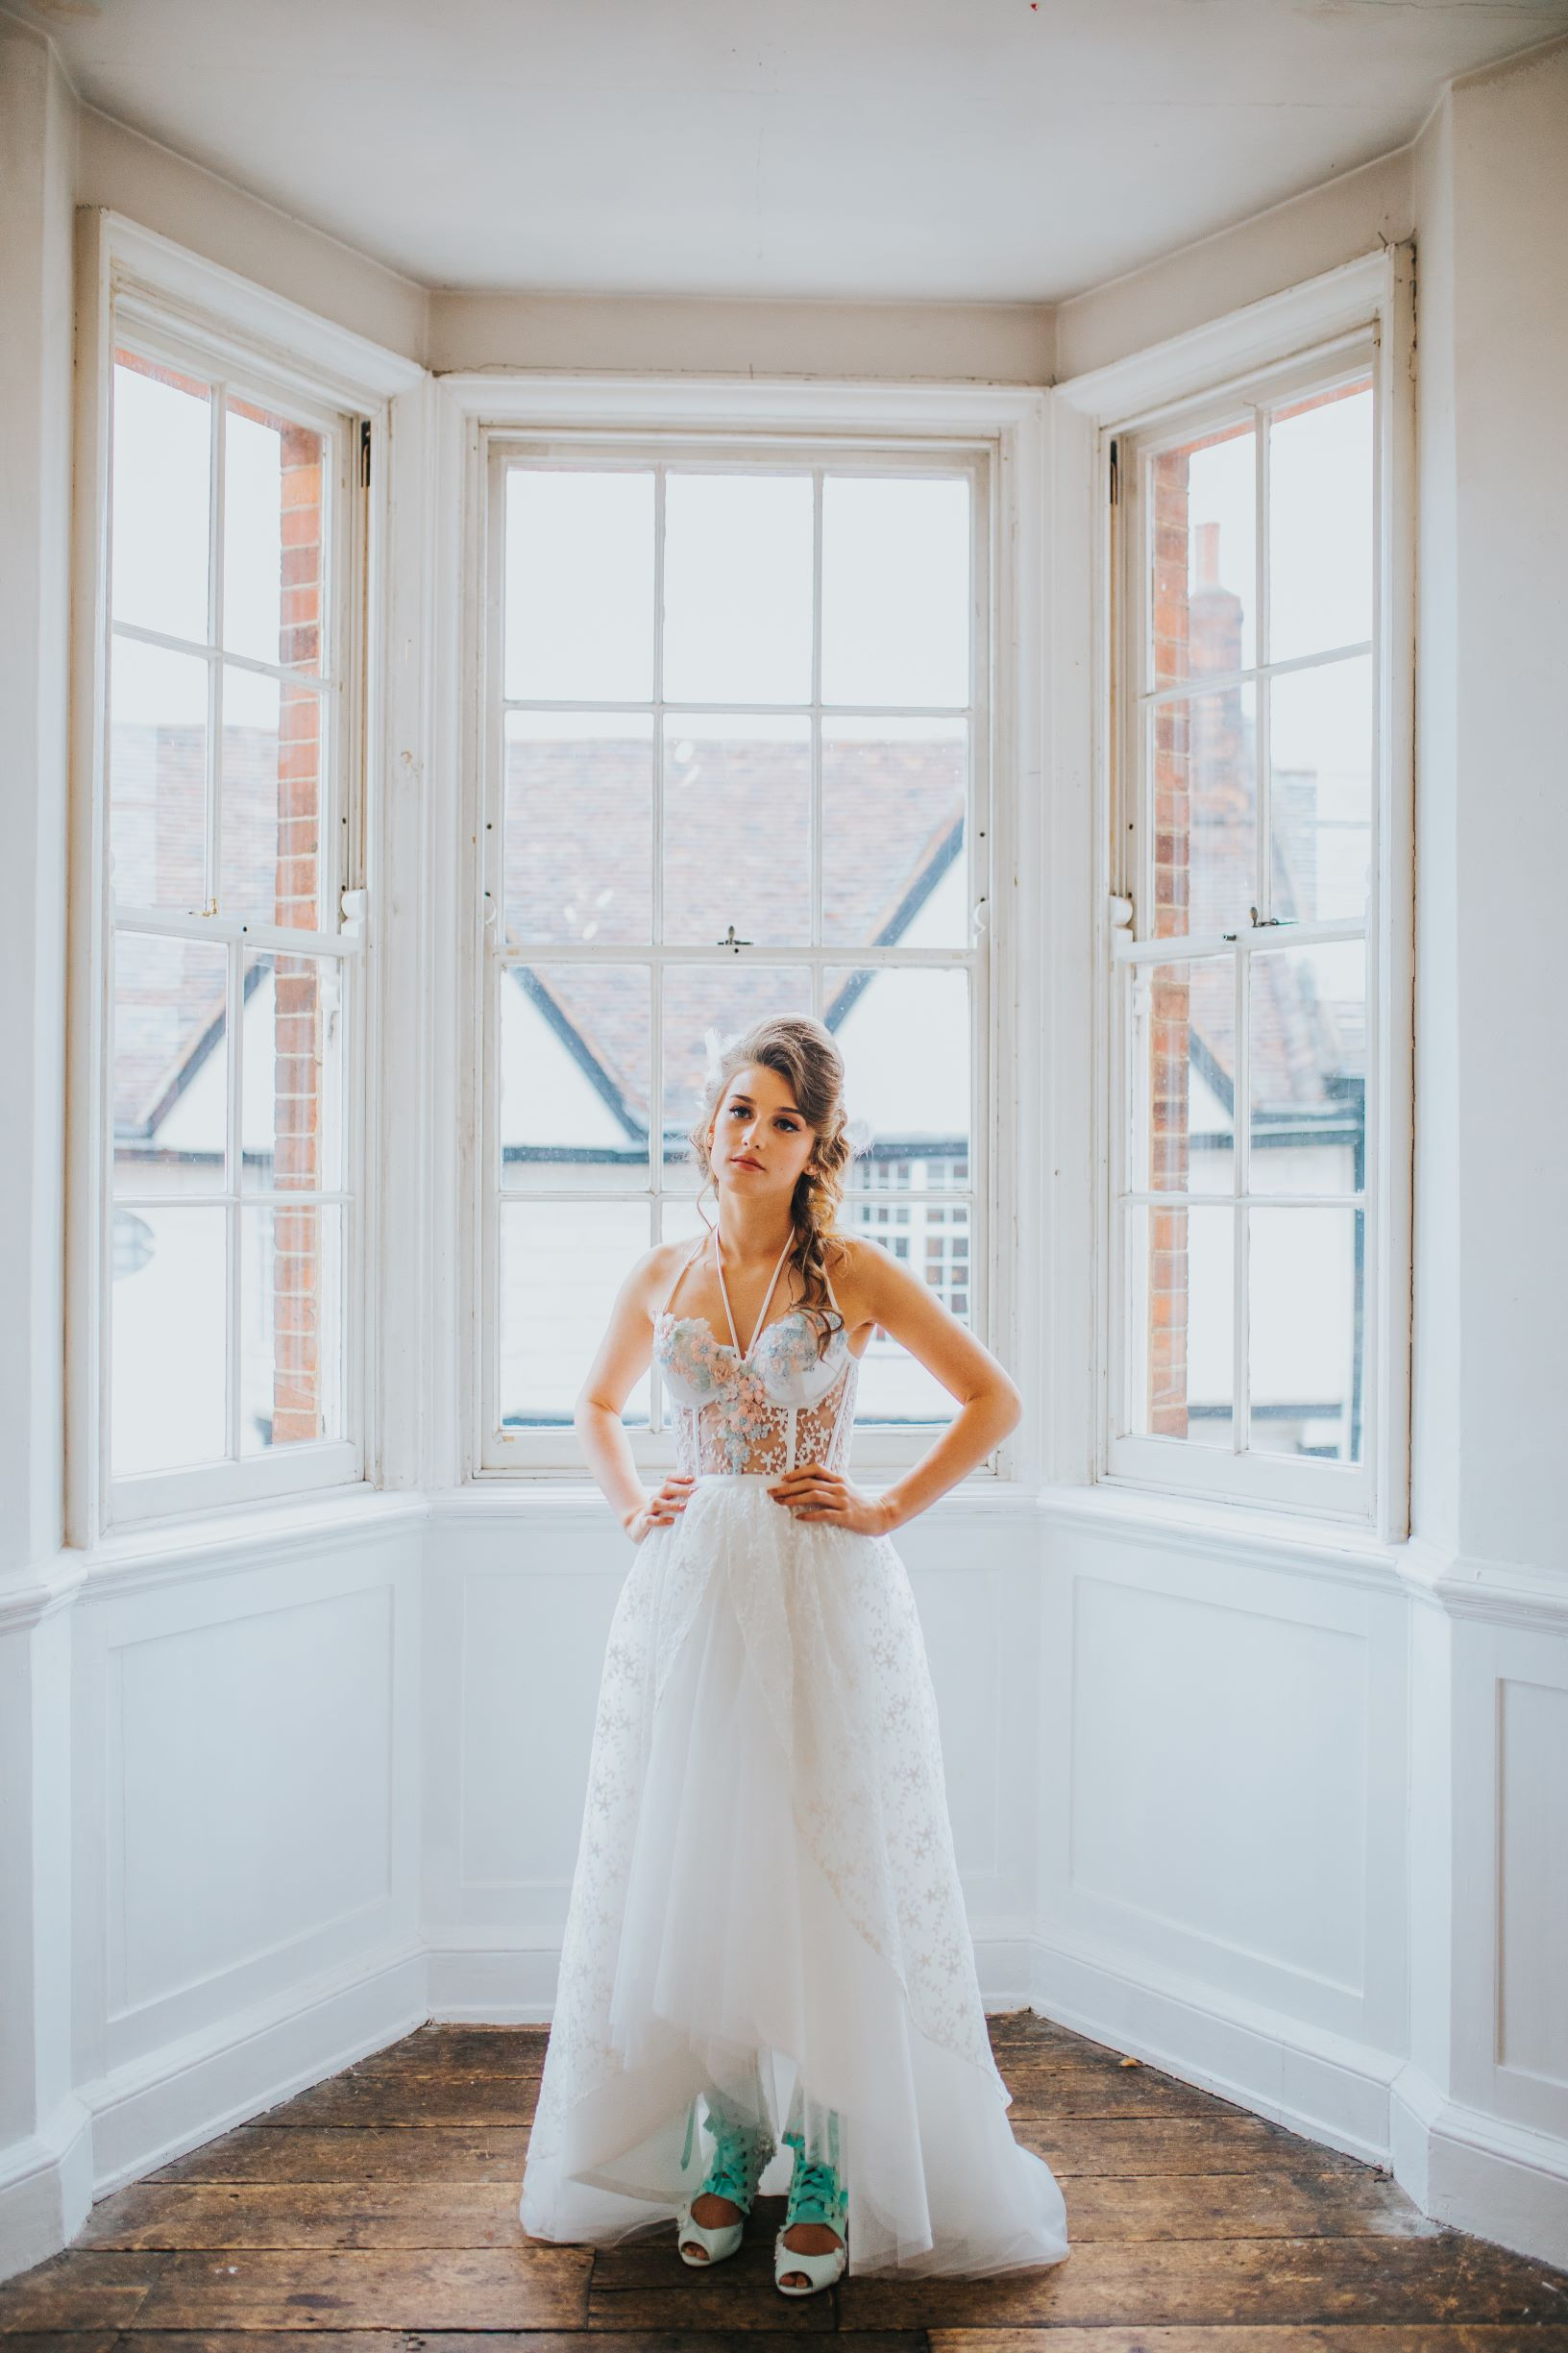 whimsical wedding- pastel wedding- laura beresford photography- unique bridalwear- alternative bridalwear